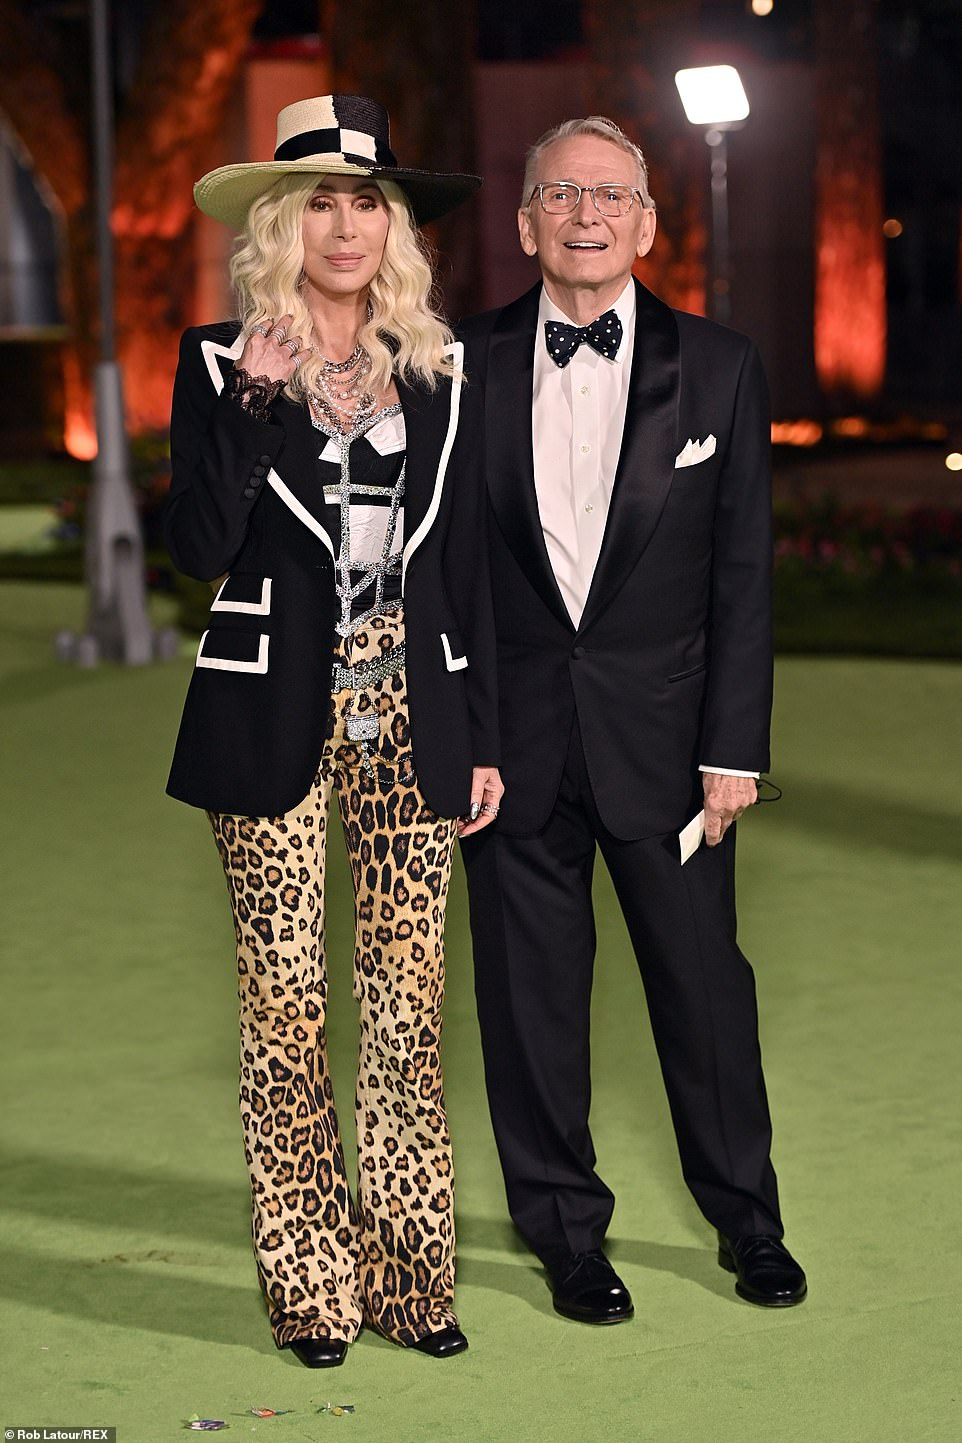 Icon: Cher showed off her wild side in leopard pants as she posed with Bob Mackie